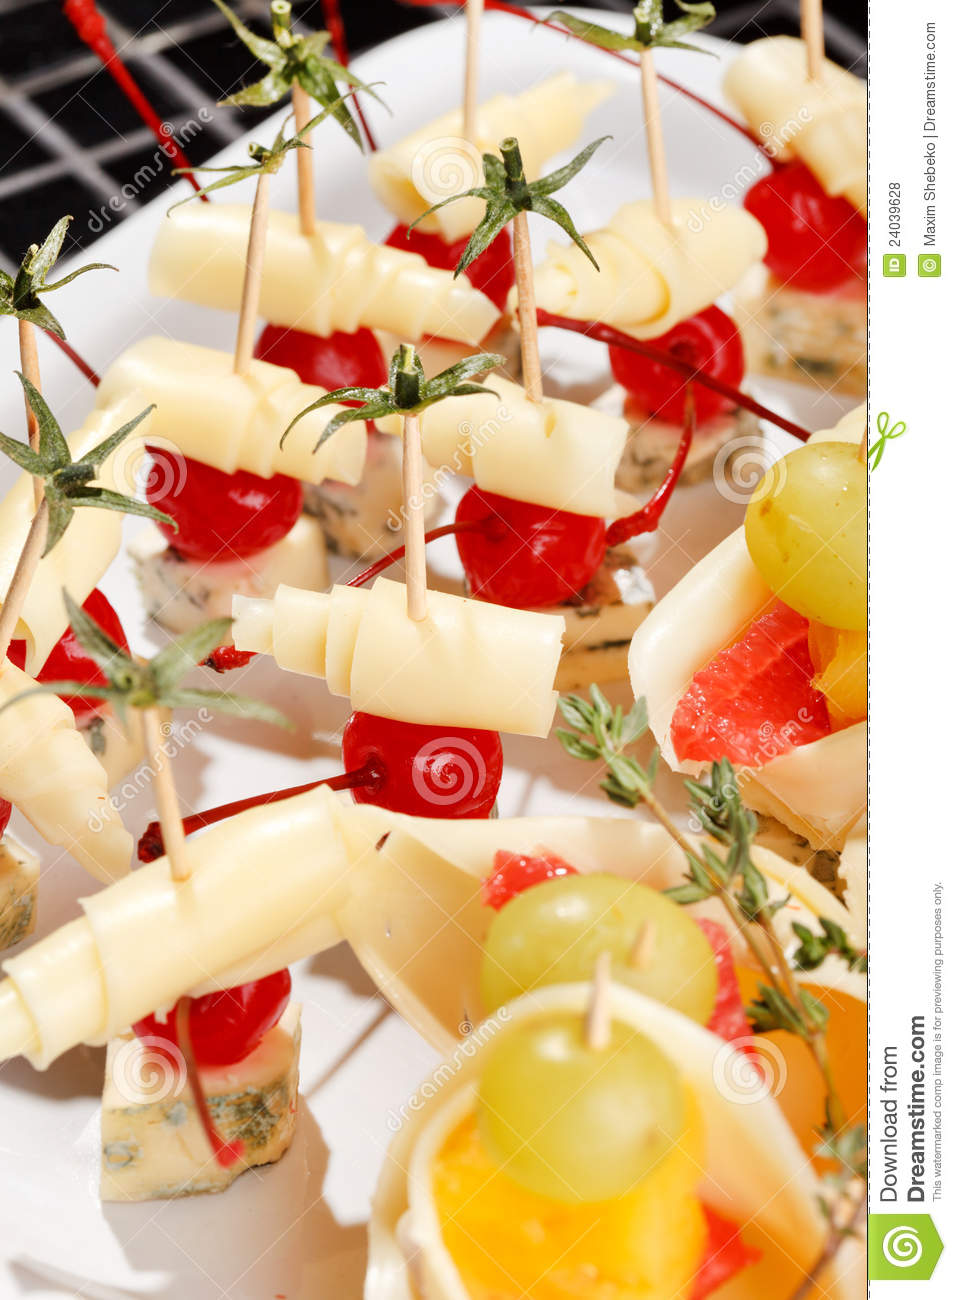 Canape on the plate stock photo image of cheese for Canape restaurant